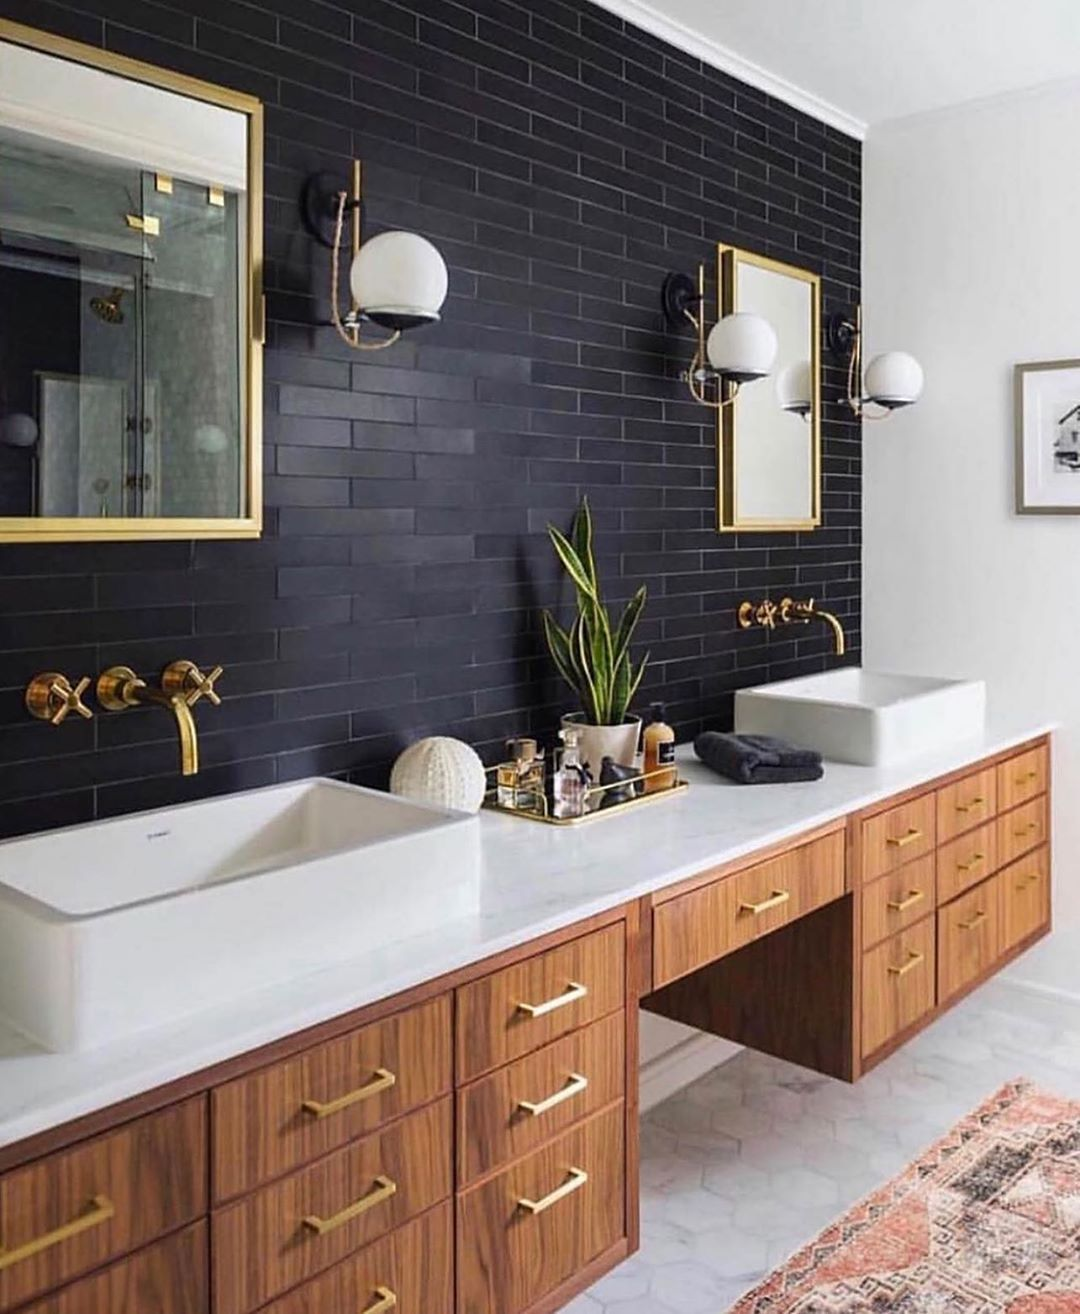 30+ Bathroom Decorating Ideas You'll Want to Refresh 2019 - Page 22 of 38 - My Blog